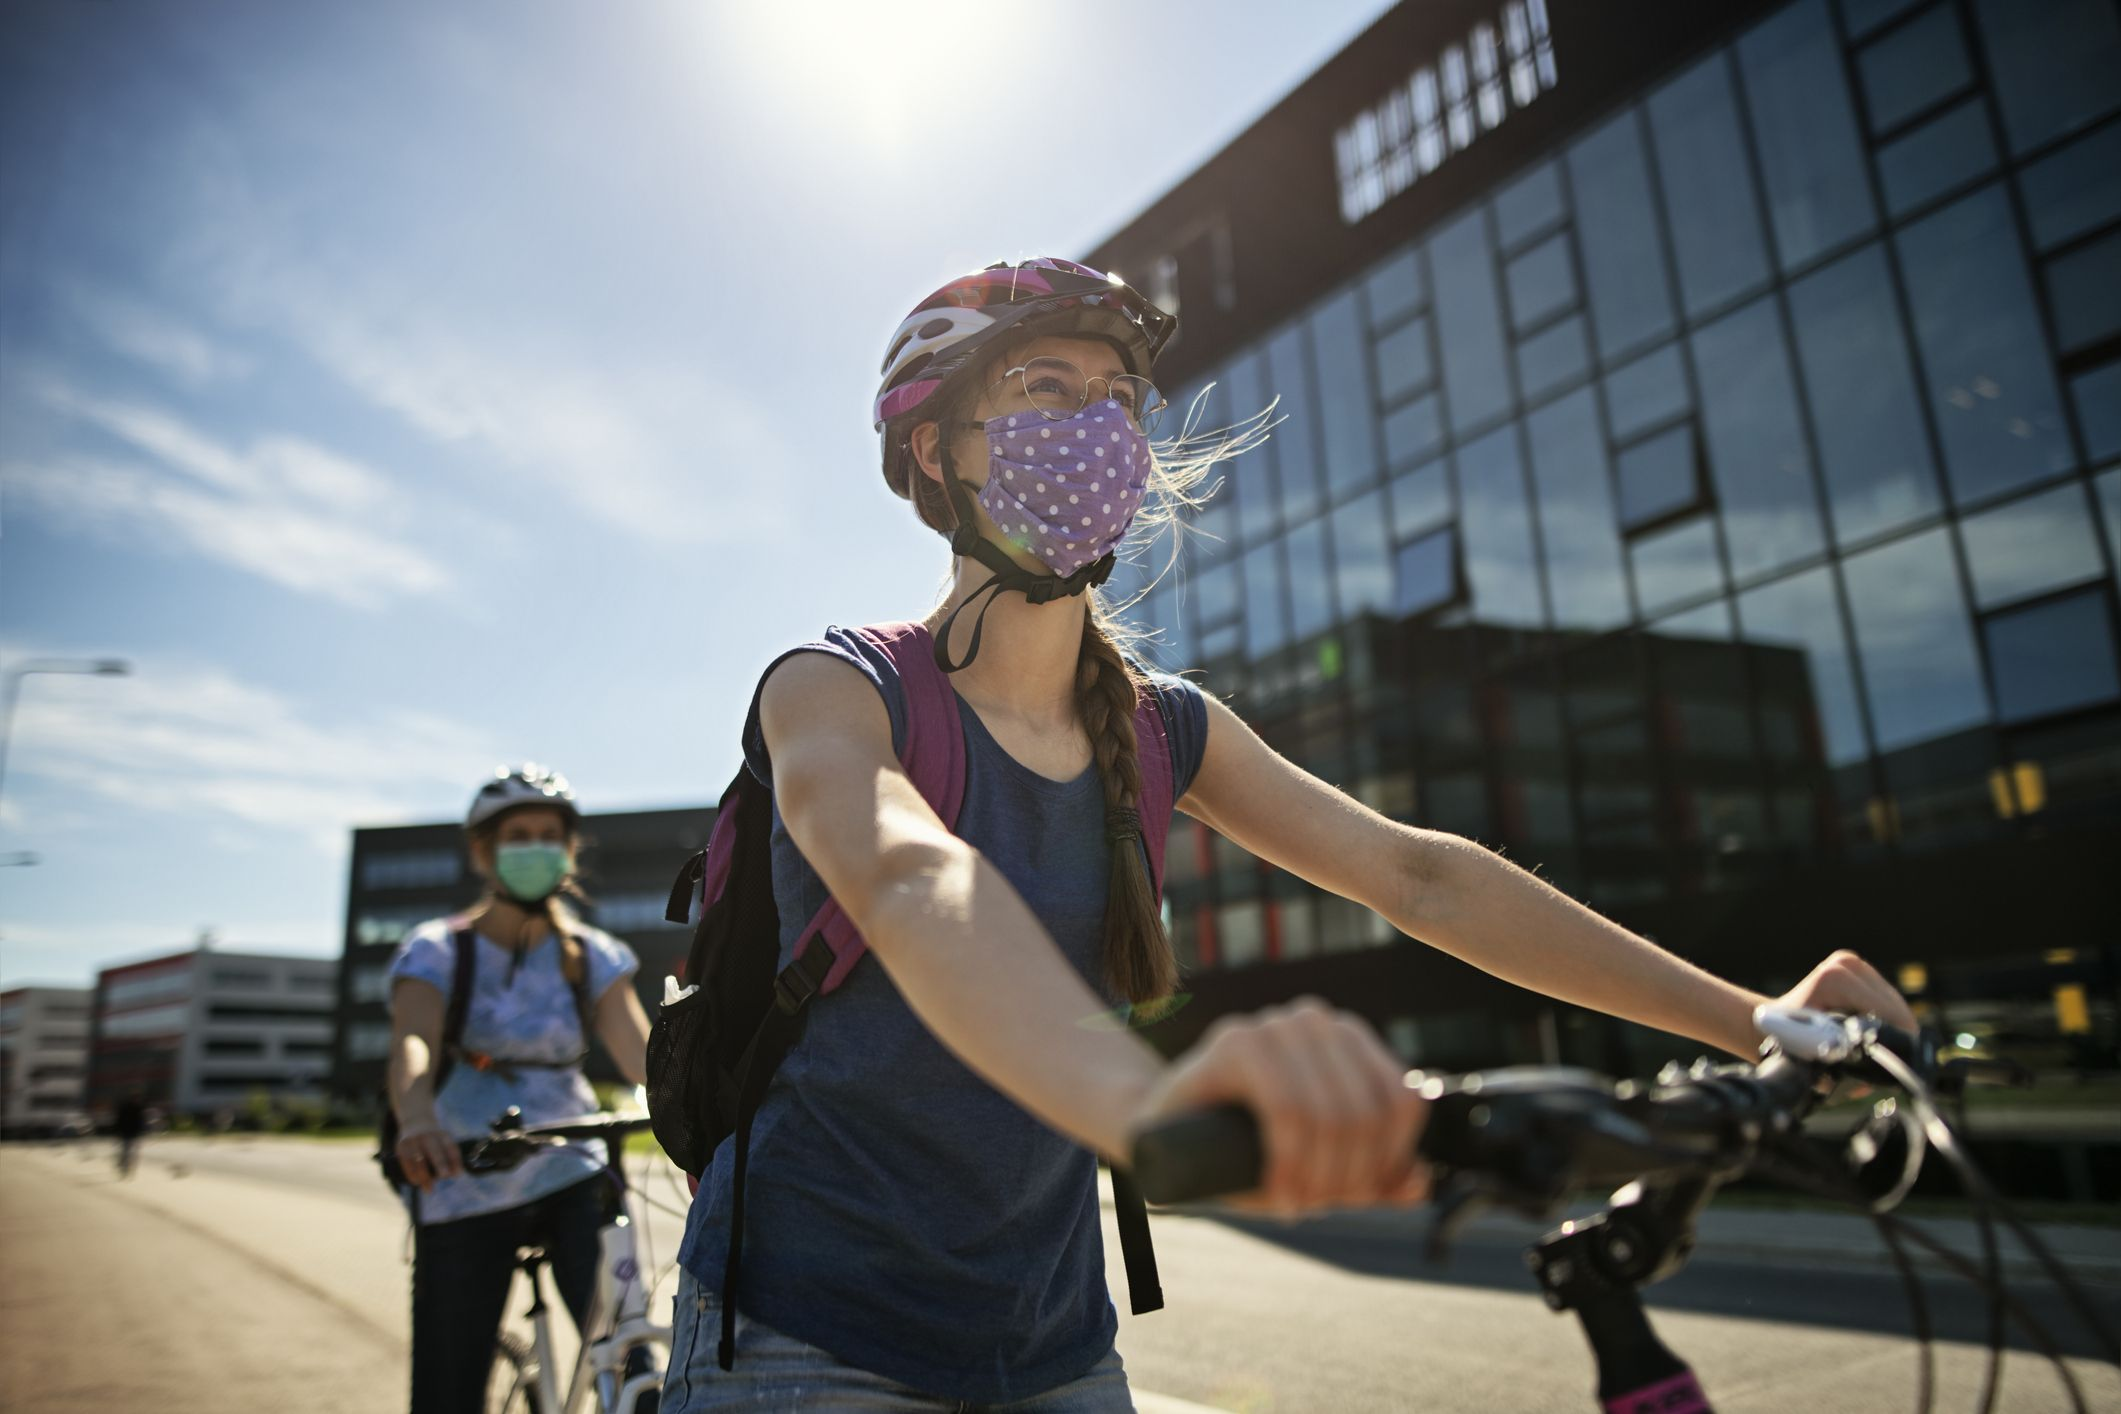 Let's ride a bike to fight the epidemic